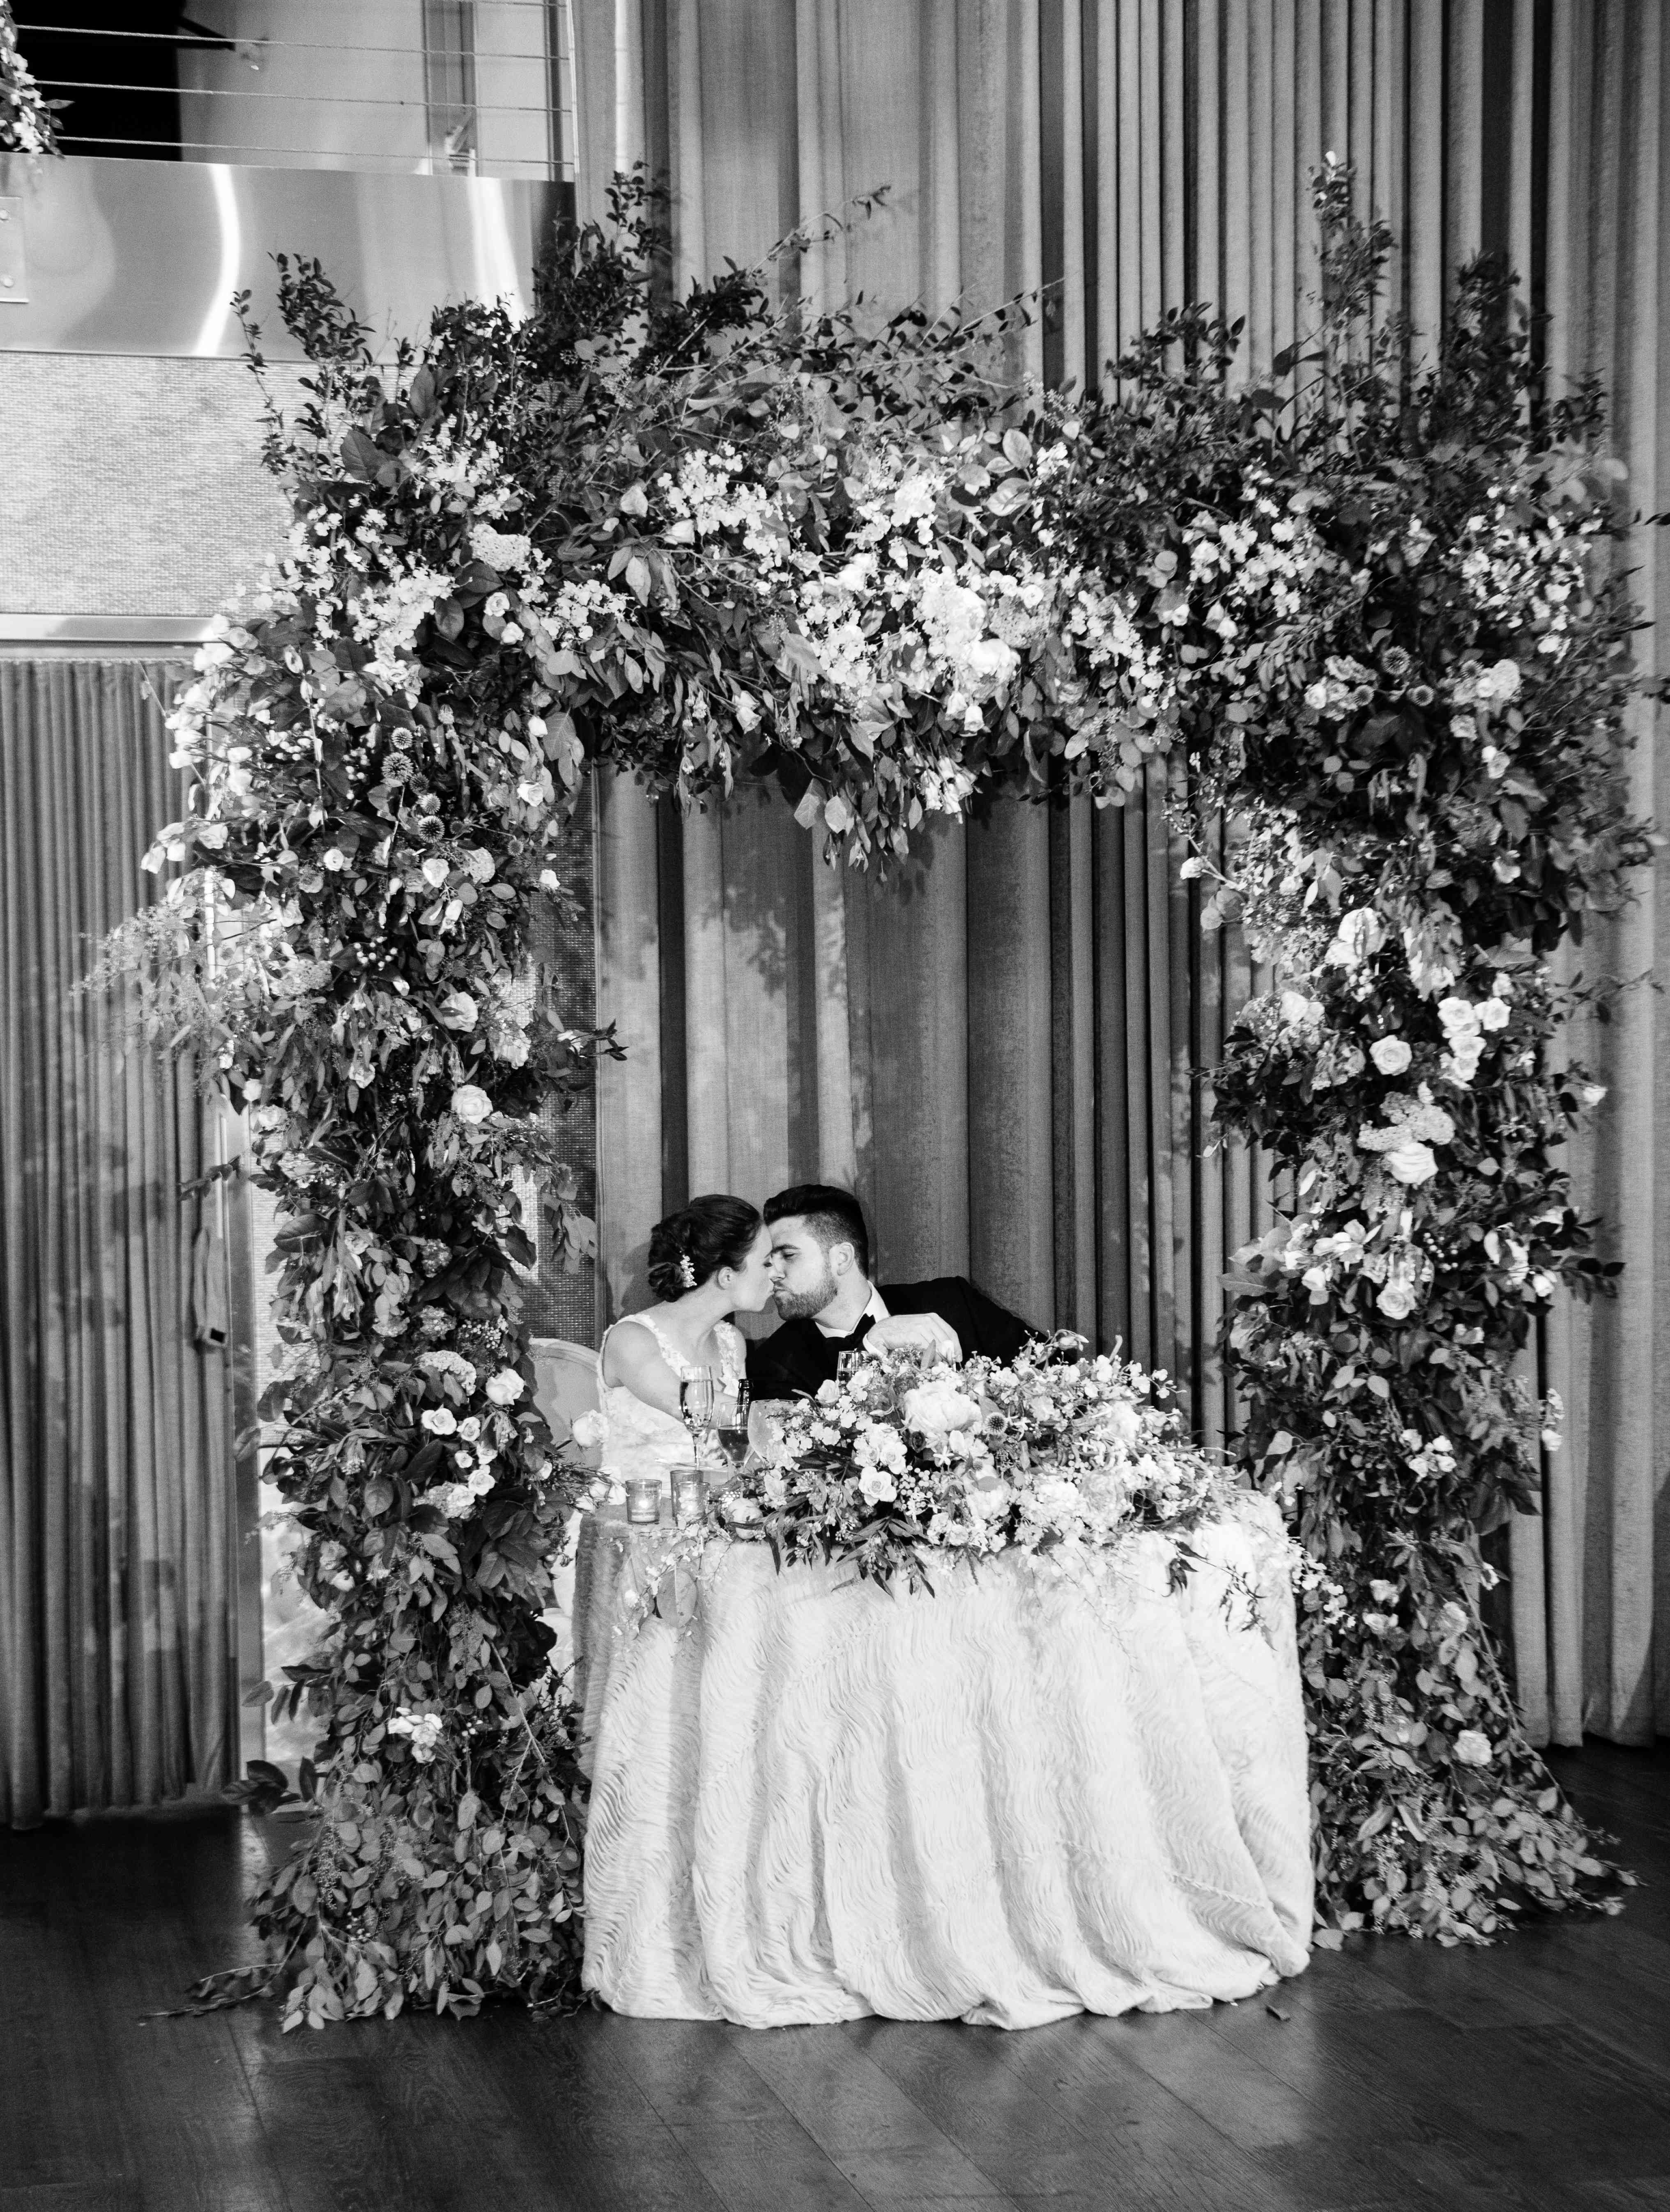 <p>sweetheart table with floral arch</p><br><br>